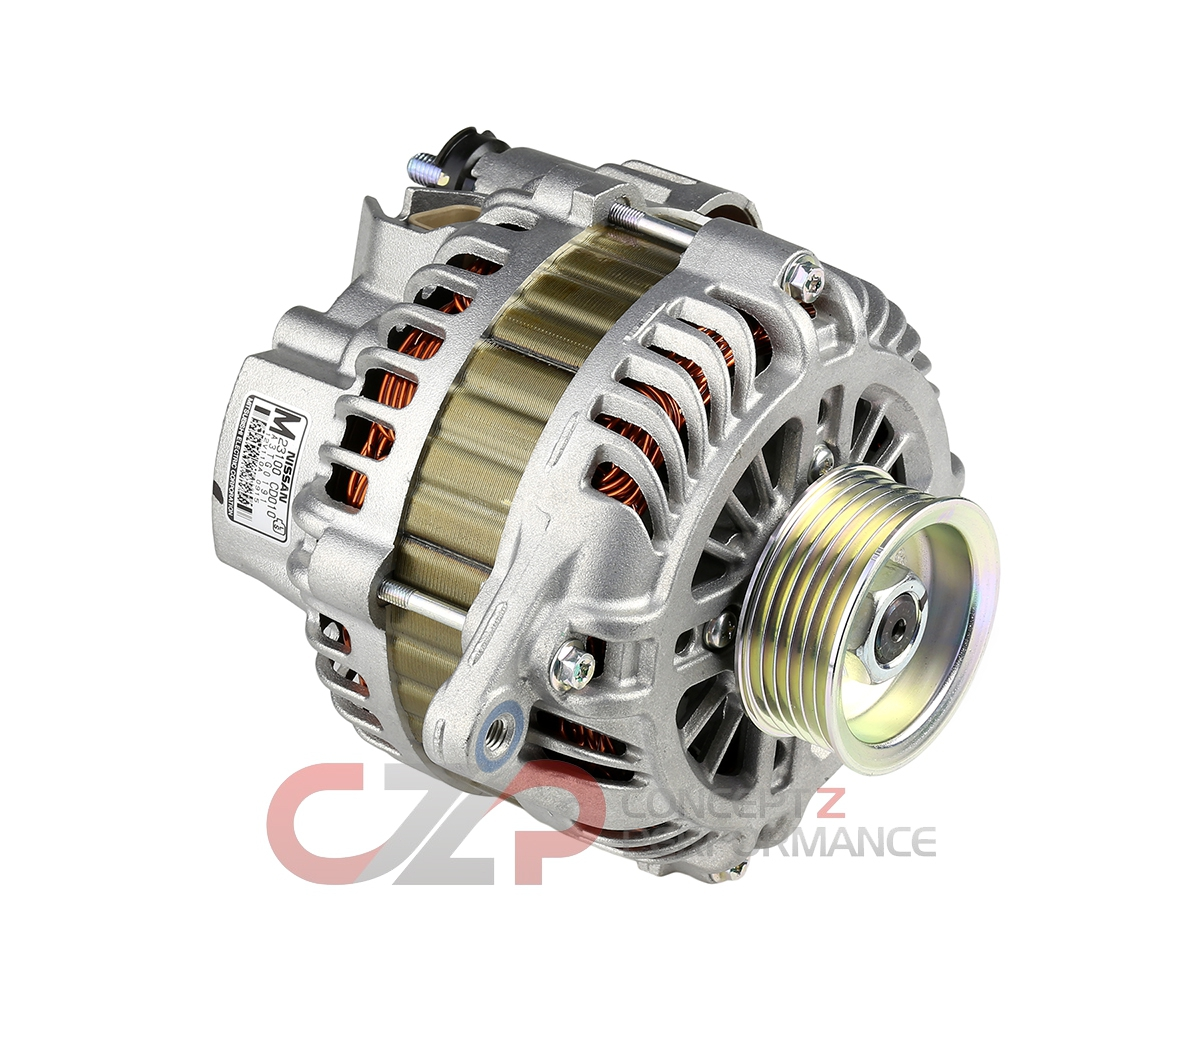 WPS High Output 150 Amp Alternator Assembly VQ35HR VQ37VHR - Nissan 350Z 370Z / Infiniti G35 G37 Q40 Q50 Q60 Q70 M35 M37 FX35